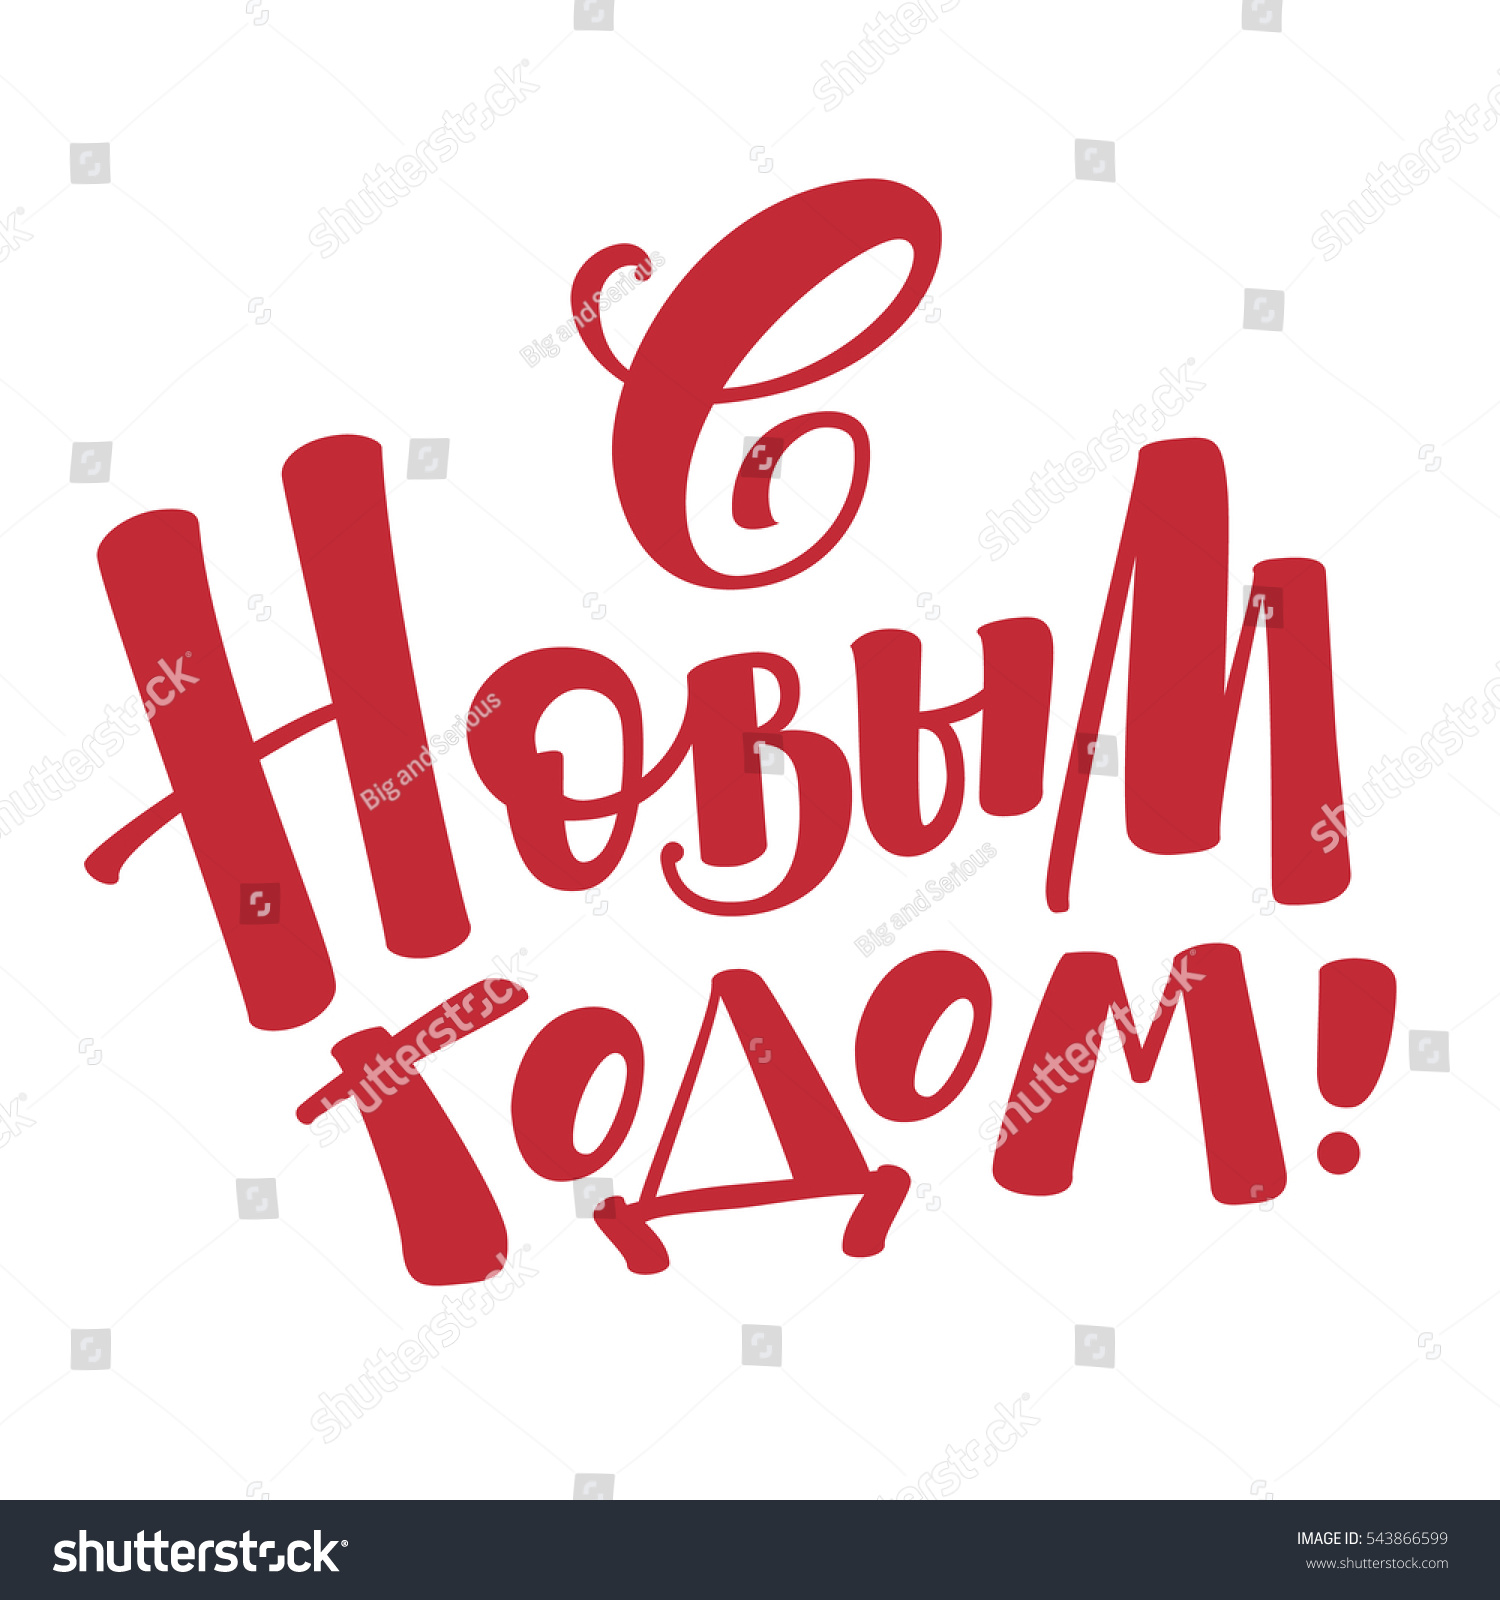 Happy new year text lettering written stock vector 543866599 happy new year text lettering written in russian language for greeting cards banners kristyandbryce Gallery